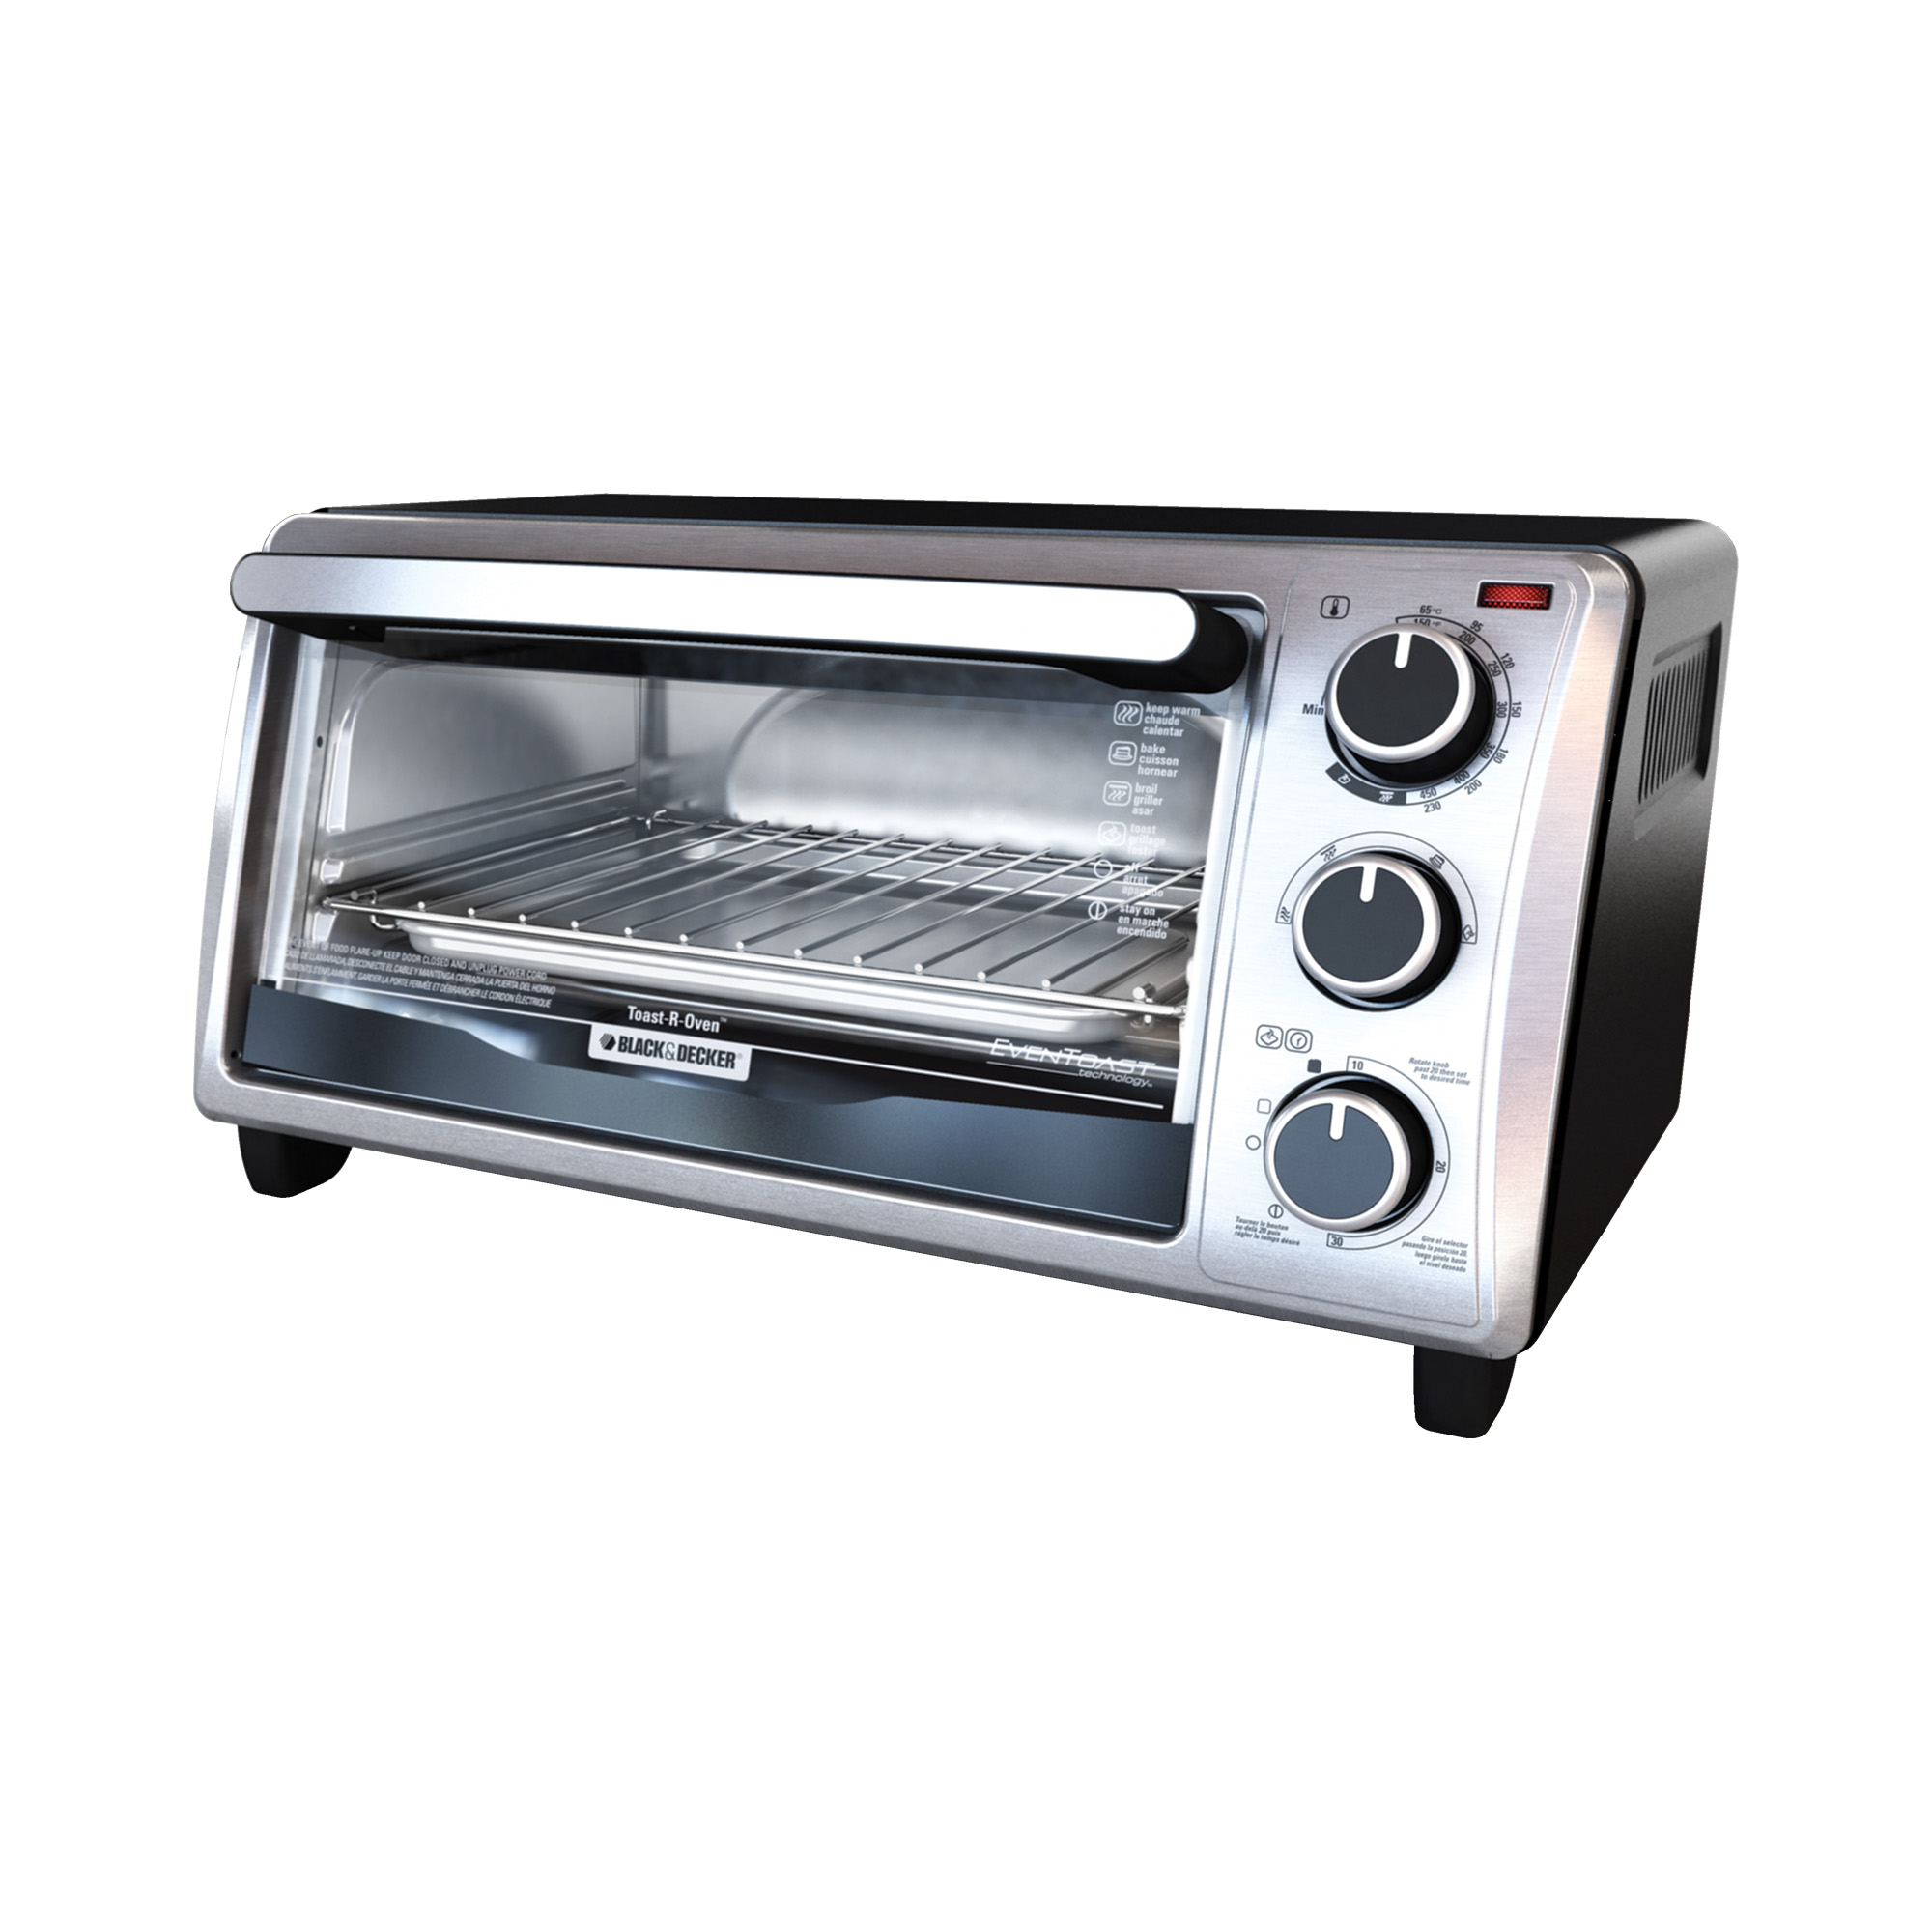 Buy a Black and Decker 4-Slice Toaster Oven Countertop Toaster Oven ...